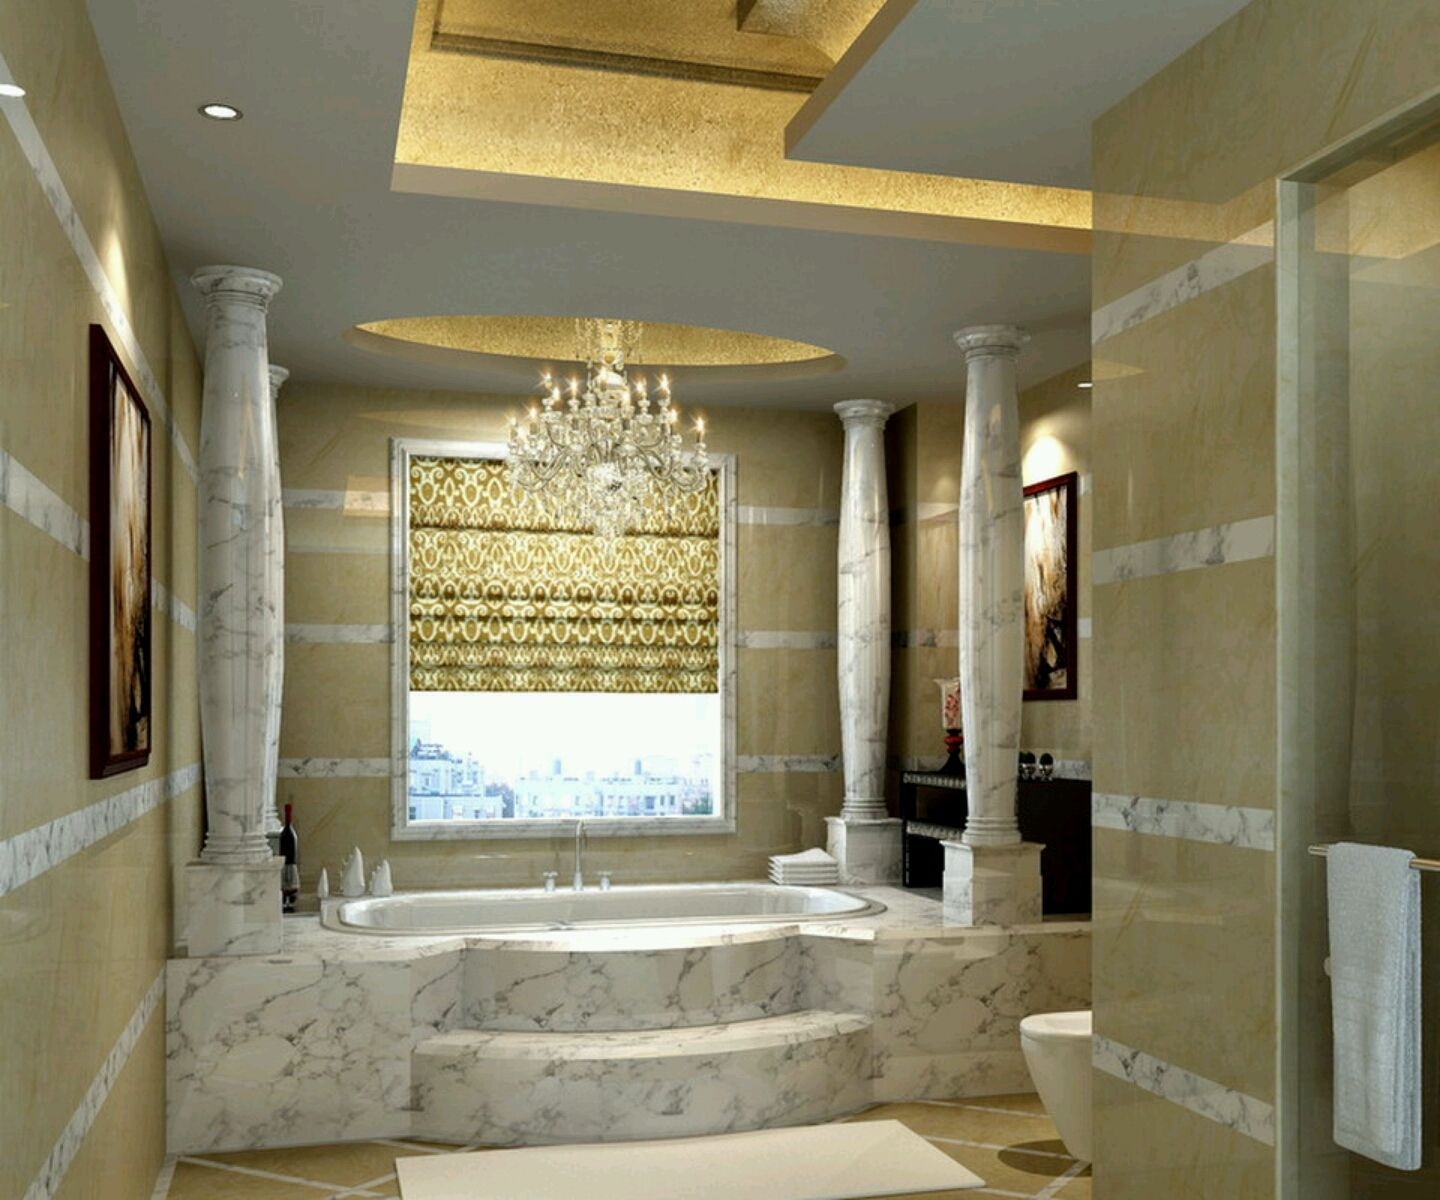 Best Master Bathroom Designs Interesting 11 Luxurious Bathroom That Will Make You Don't Want To Leave Decorating Design